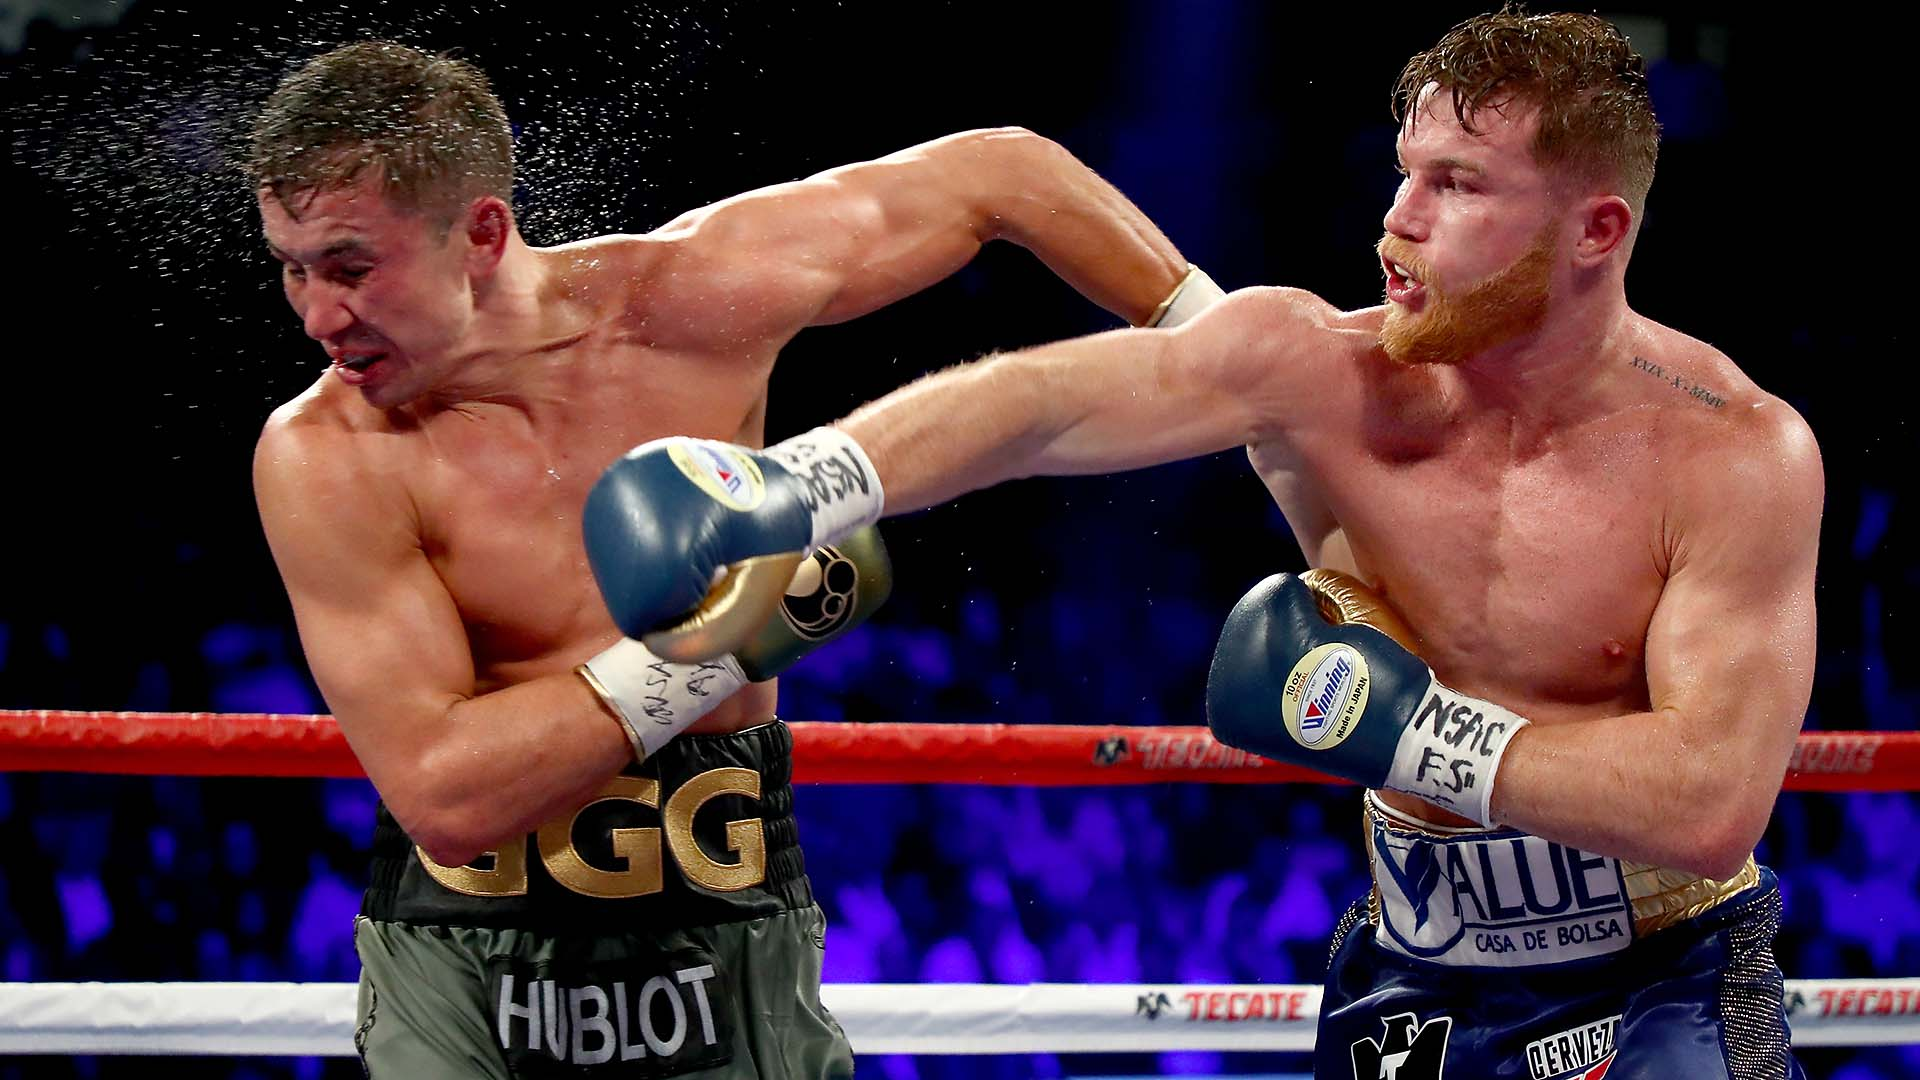 Canelo vs. GGG 2: How Canelo Alvarez will beat Gennady Golovkin